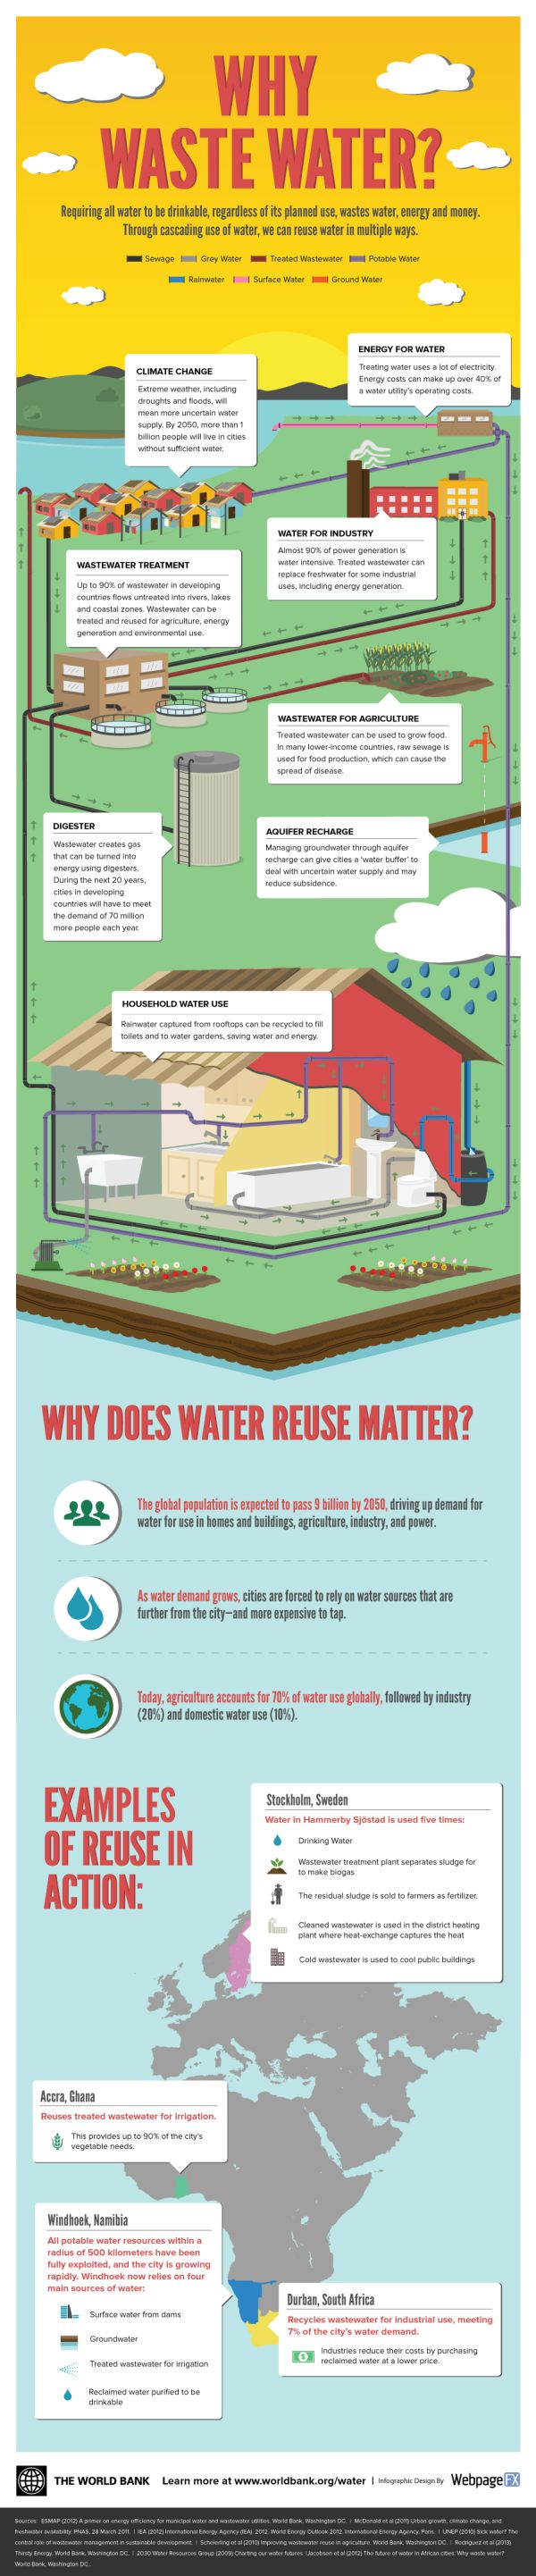 Why Waste Water